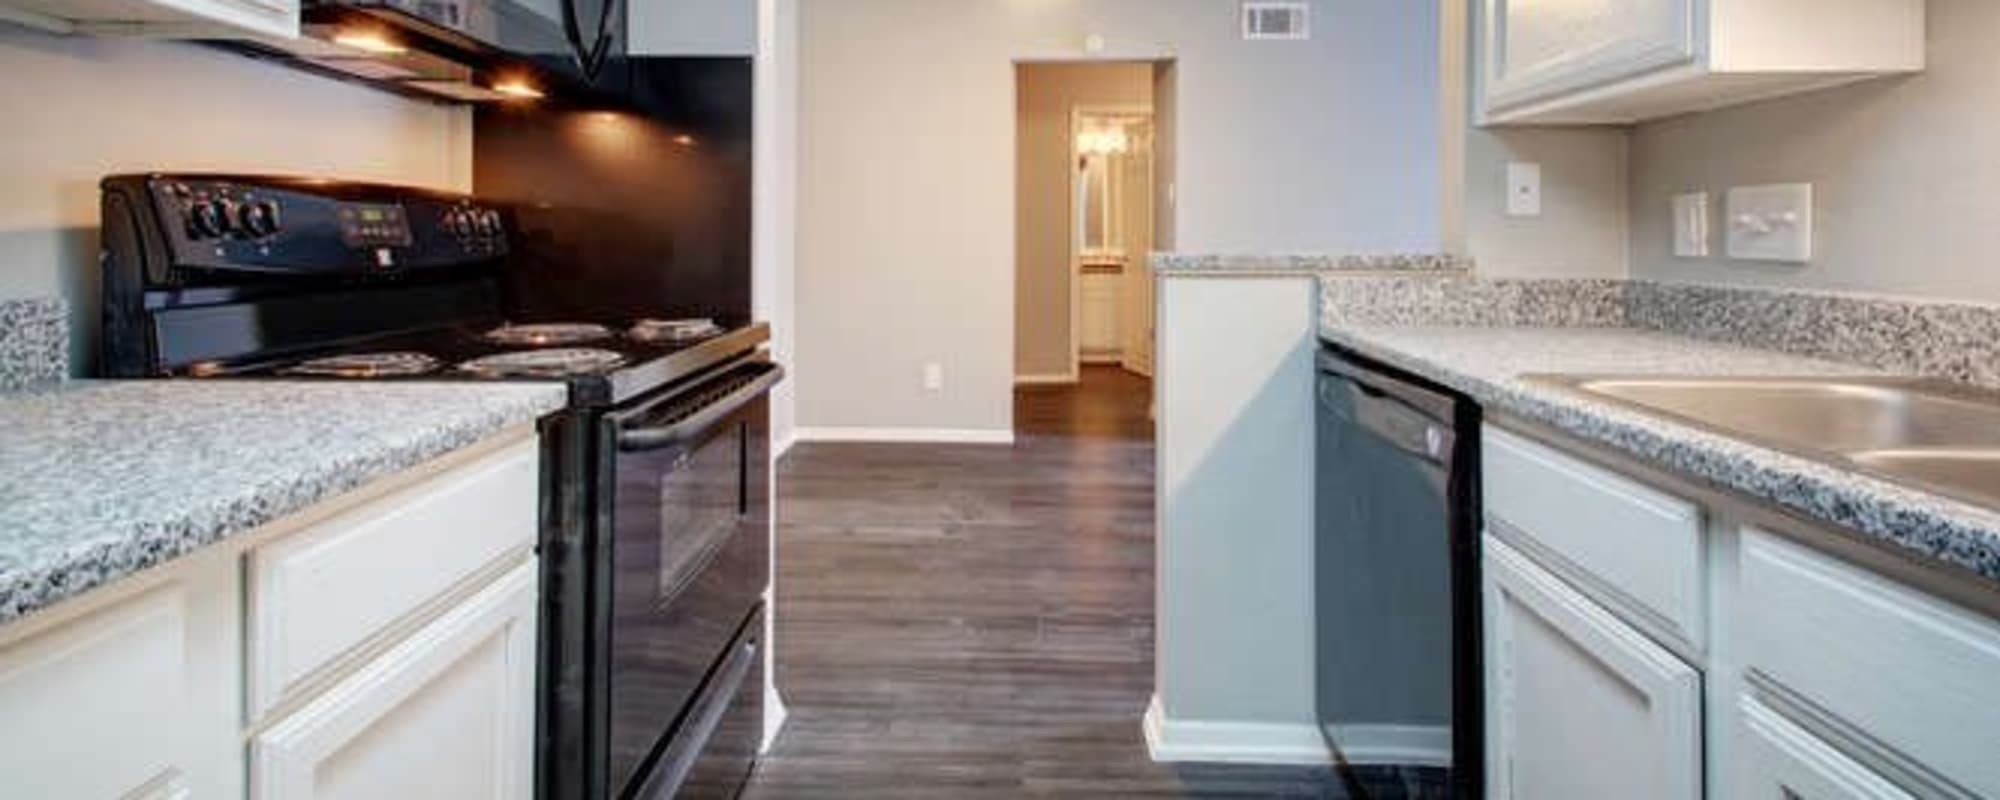 Upgraded kitchen at Northchase Apartments in Austin, Texas